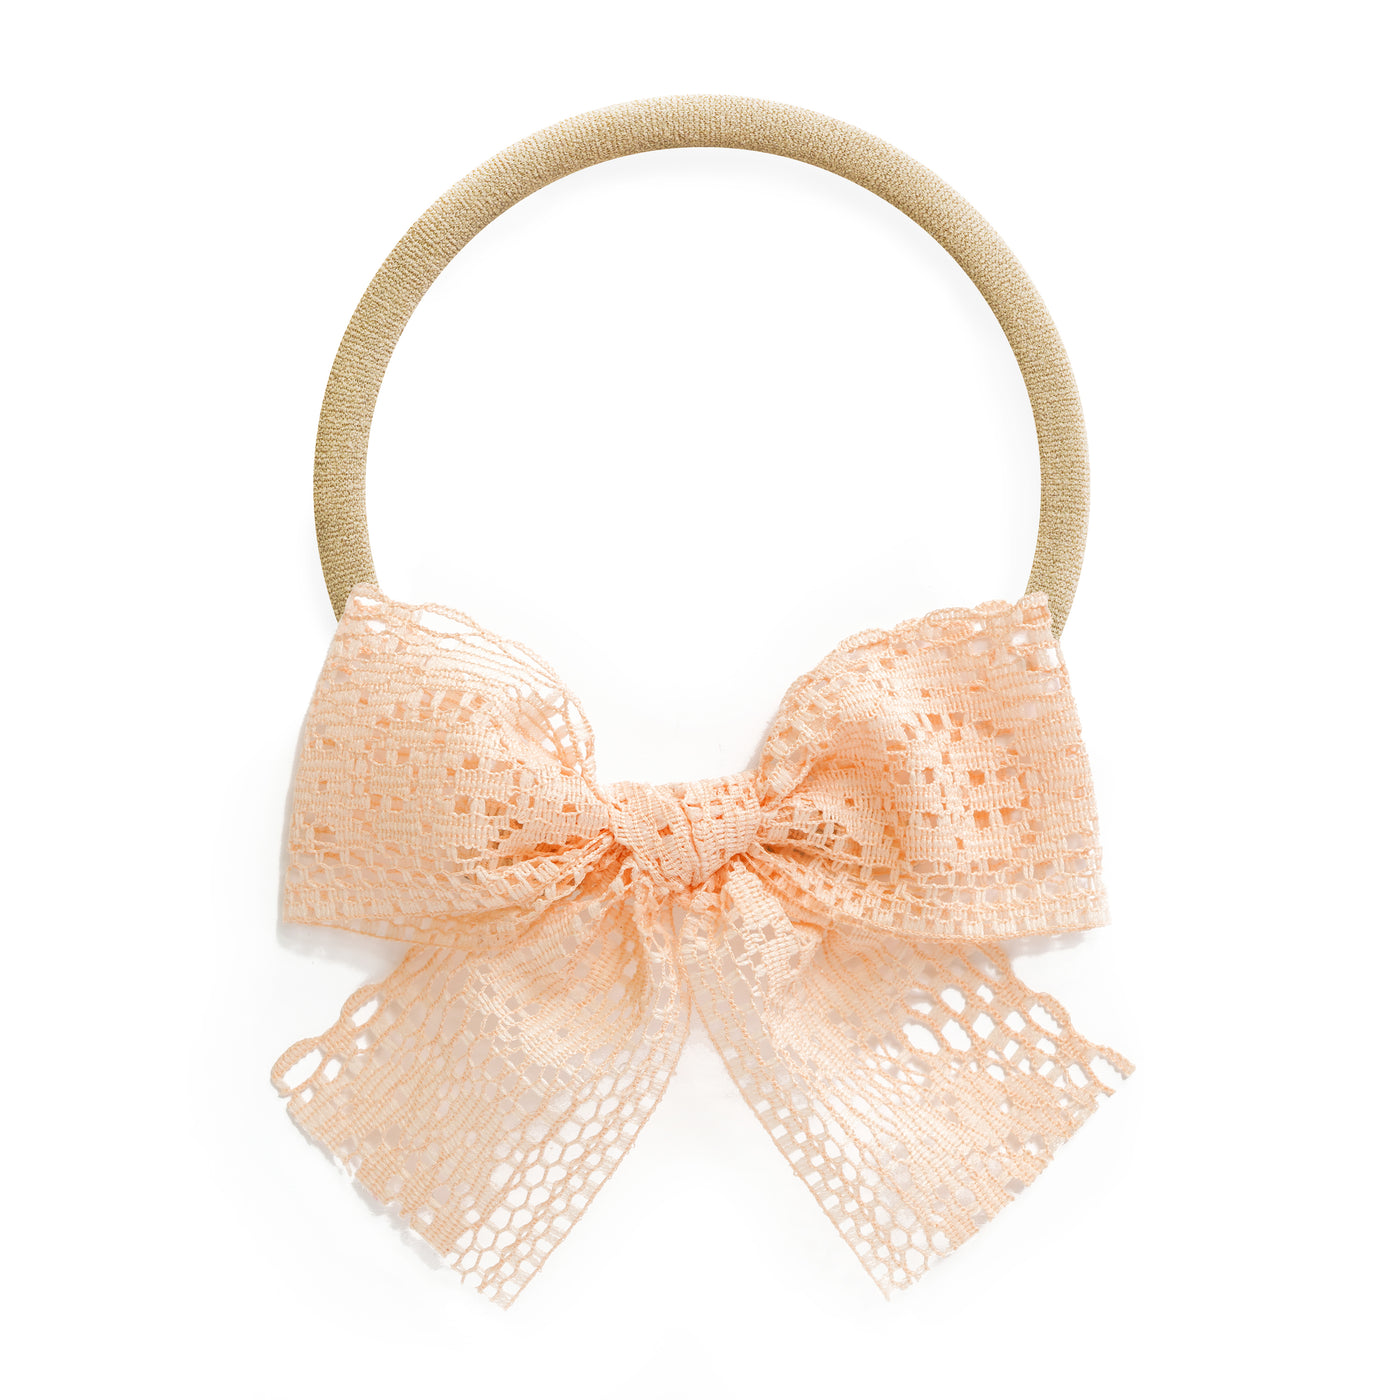 harper village baby stretchy headband with light orange peach blush lace bow